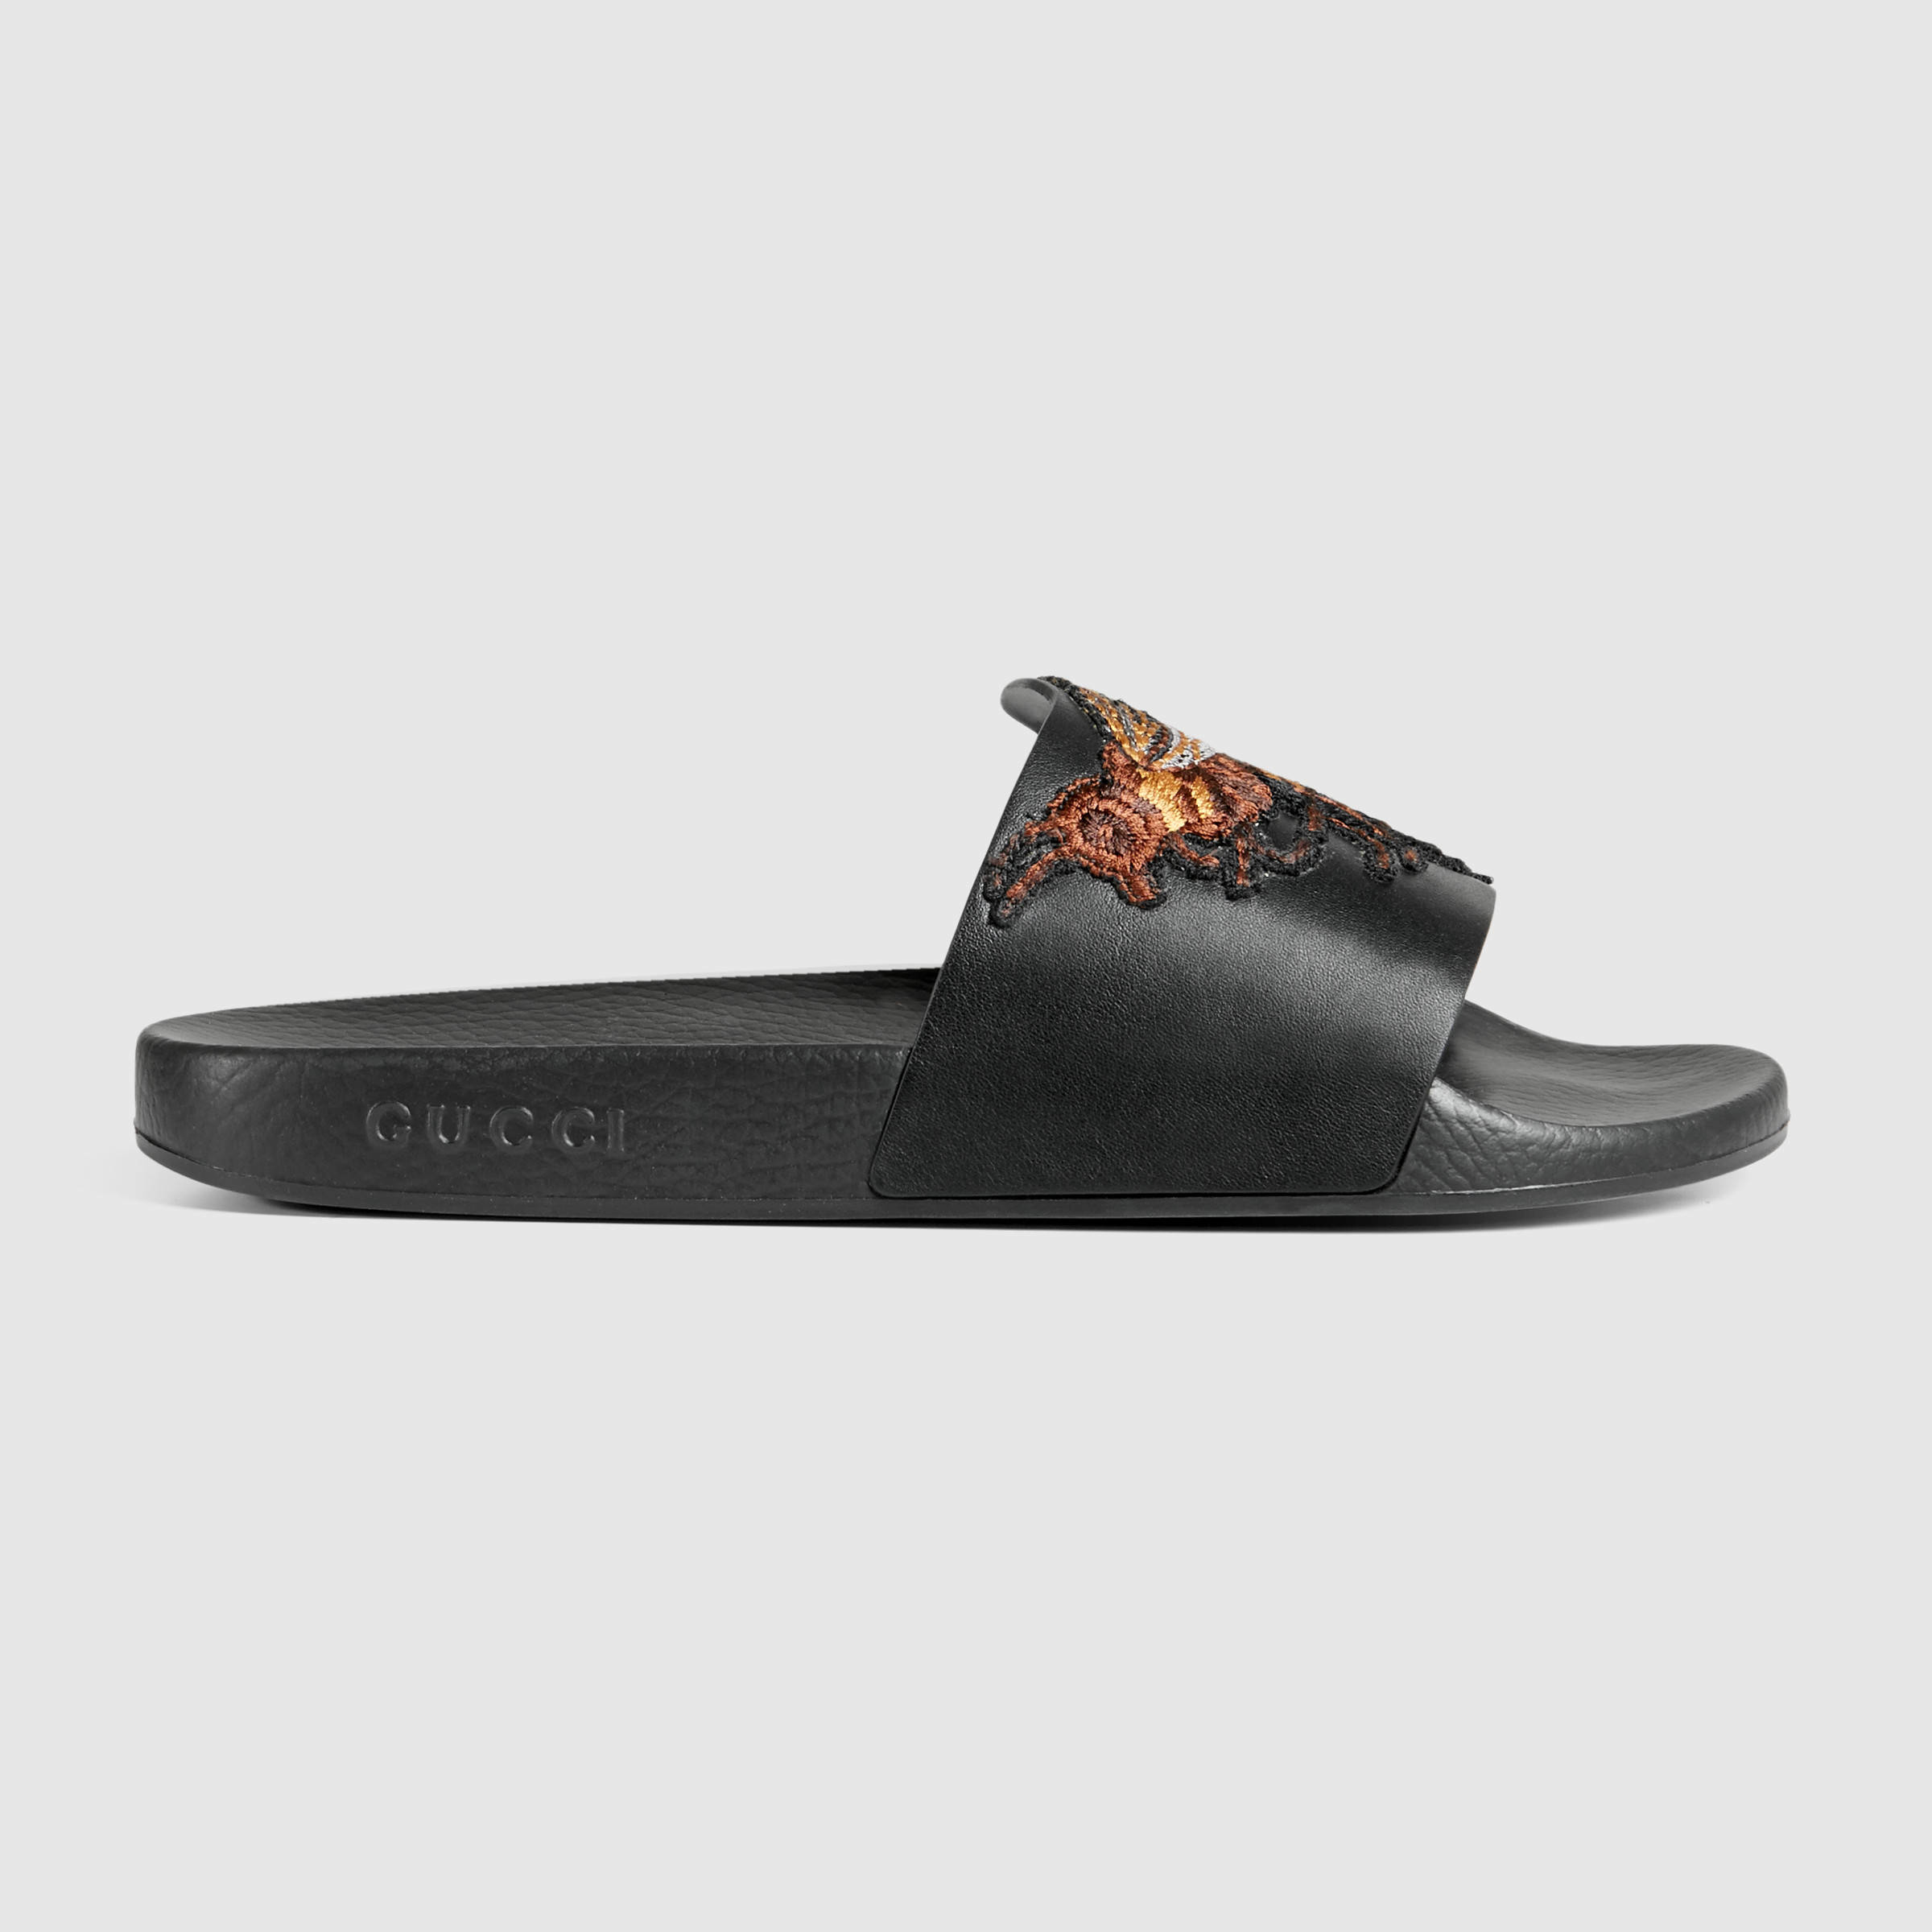 07146bb76aab Gucci Leather Sandal With Bee in Black for Men - Lyst